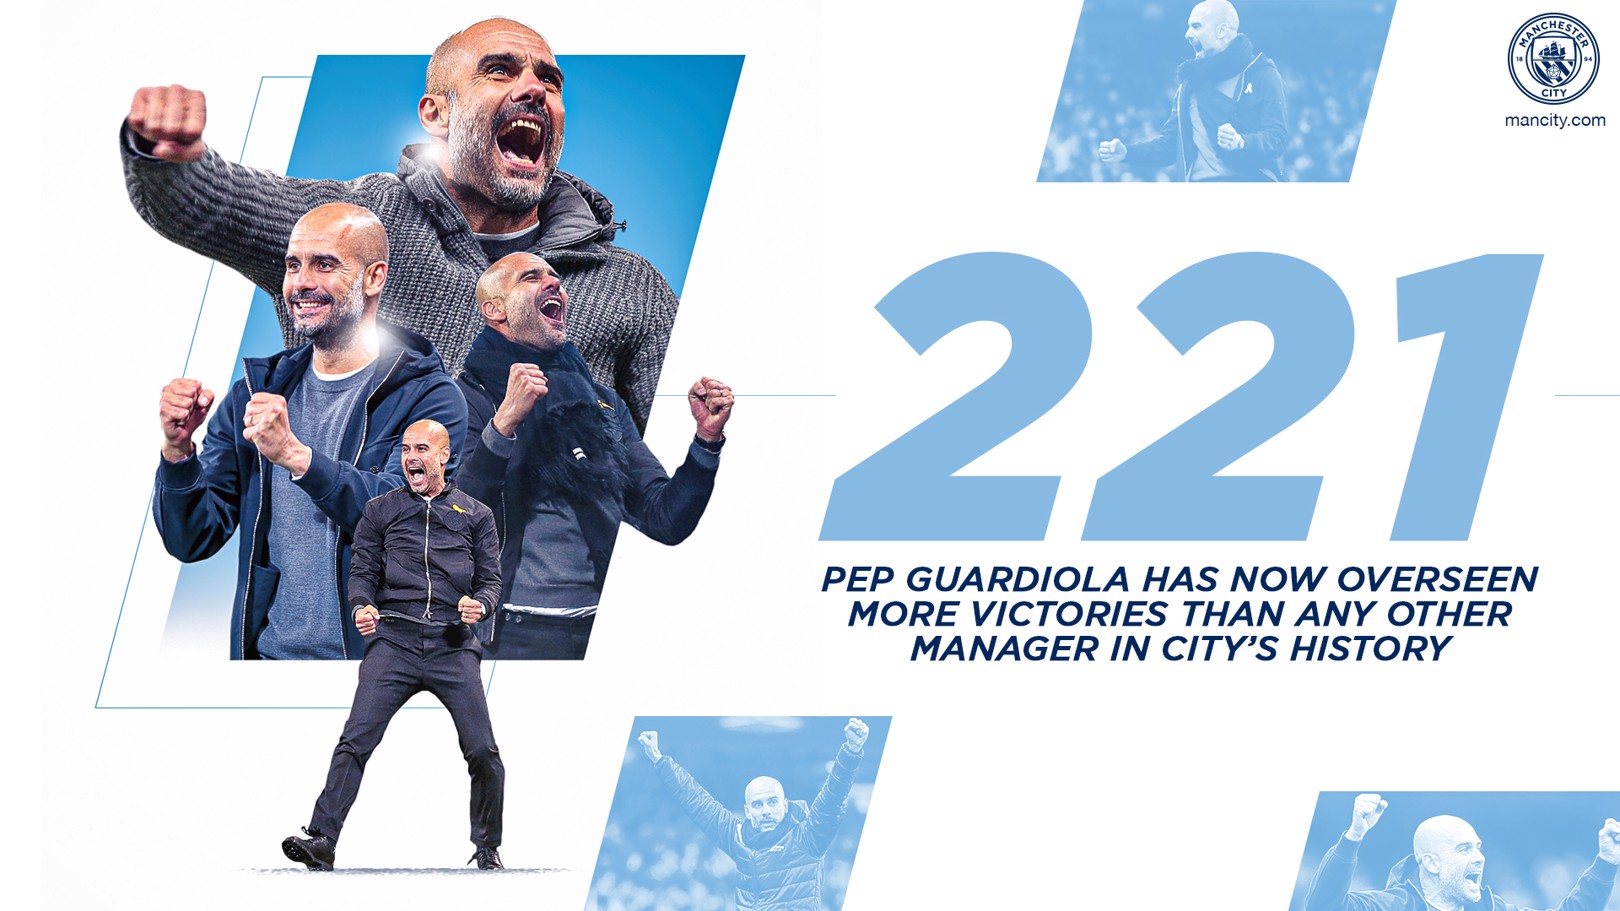 Guardiola sets new club record after Chelsea win